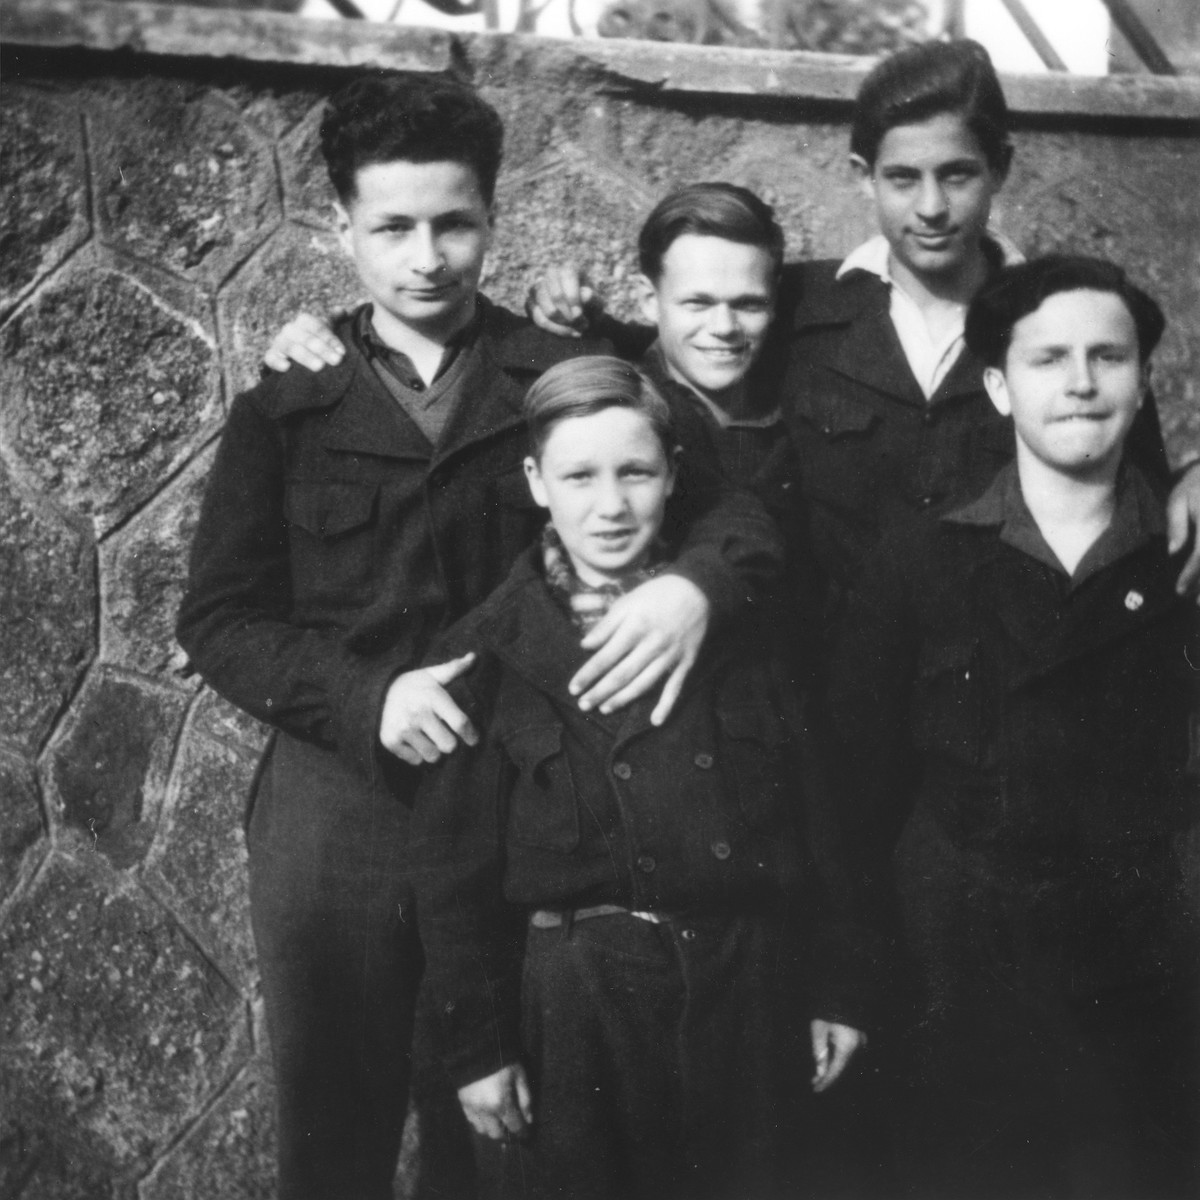 Five members of the Vichy fascist youth movement, Moisson Nouvelles, at its national center in St. Junien.    Three of the boys are hidden Jews, placed at the center by the OSI (Oeuvre de Secours aux Enfants).  The donor, Walter Karliner, is pictured in the middle of the back row.